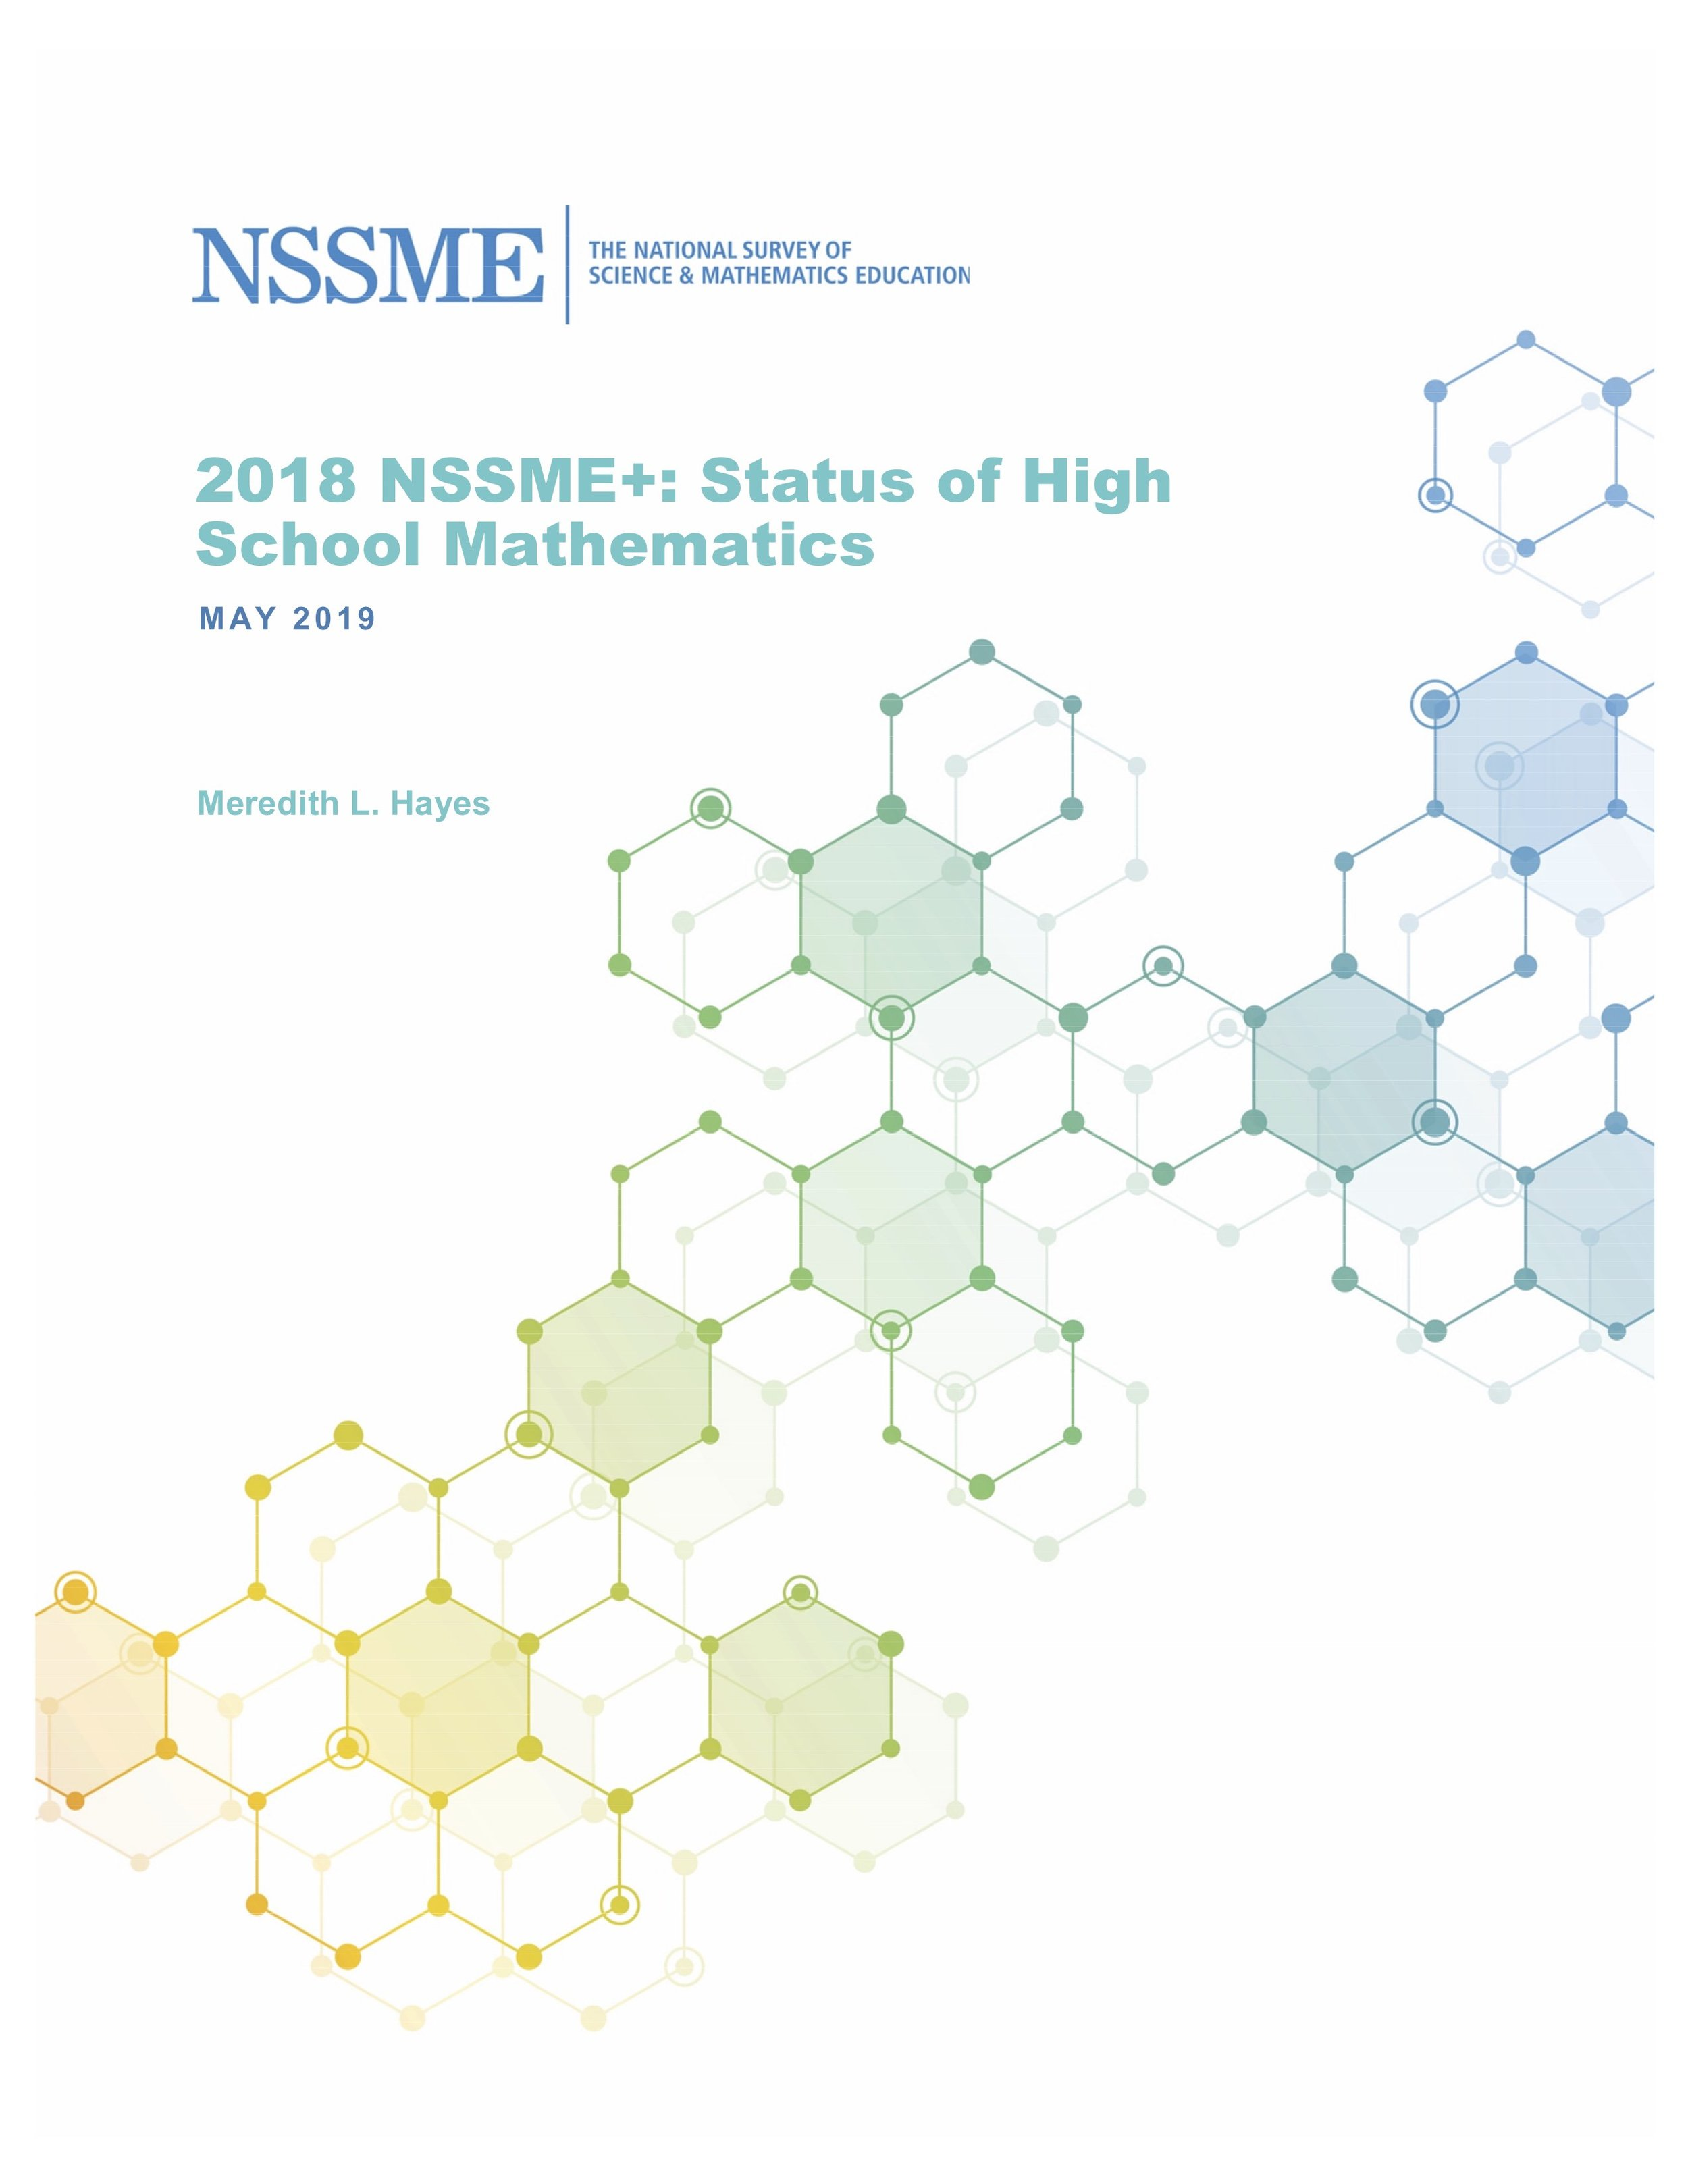 Cover of NSSME report